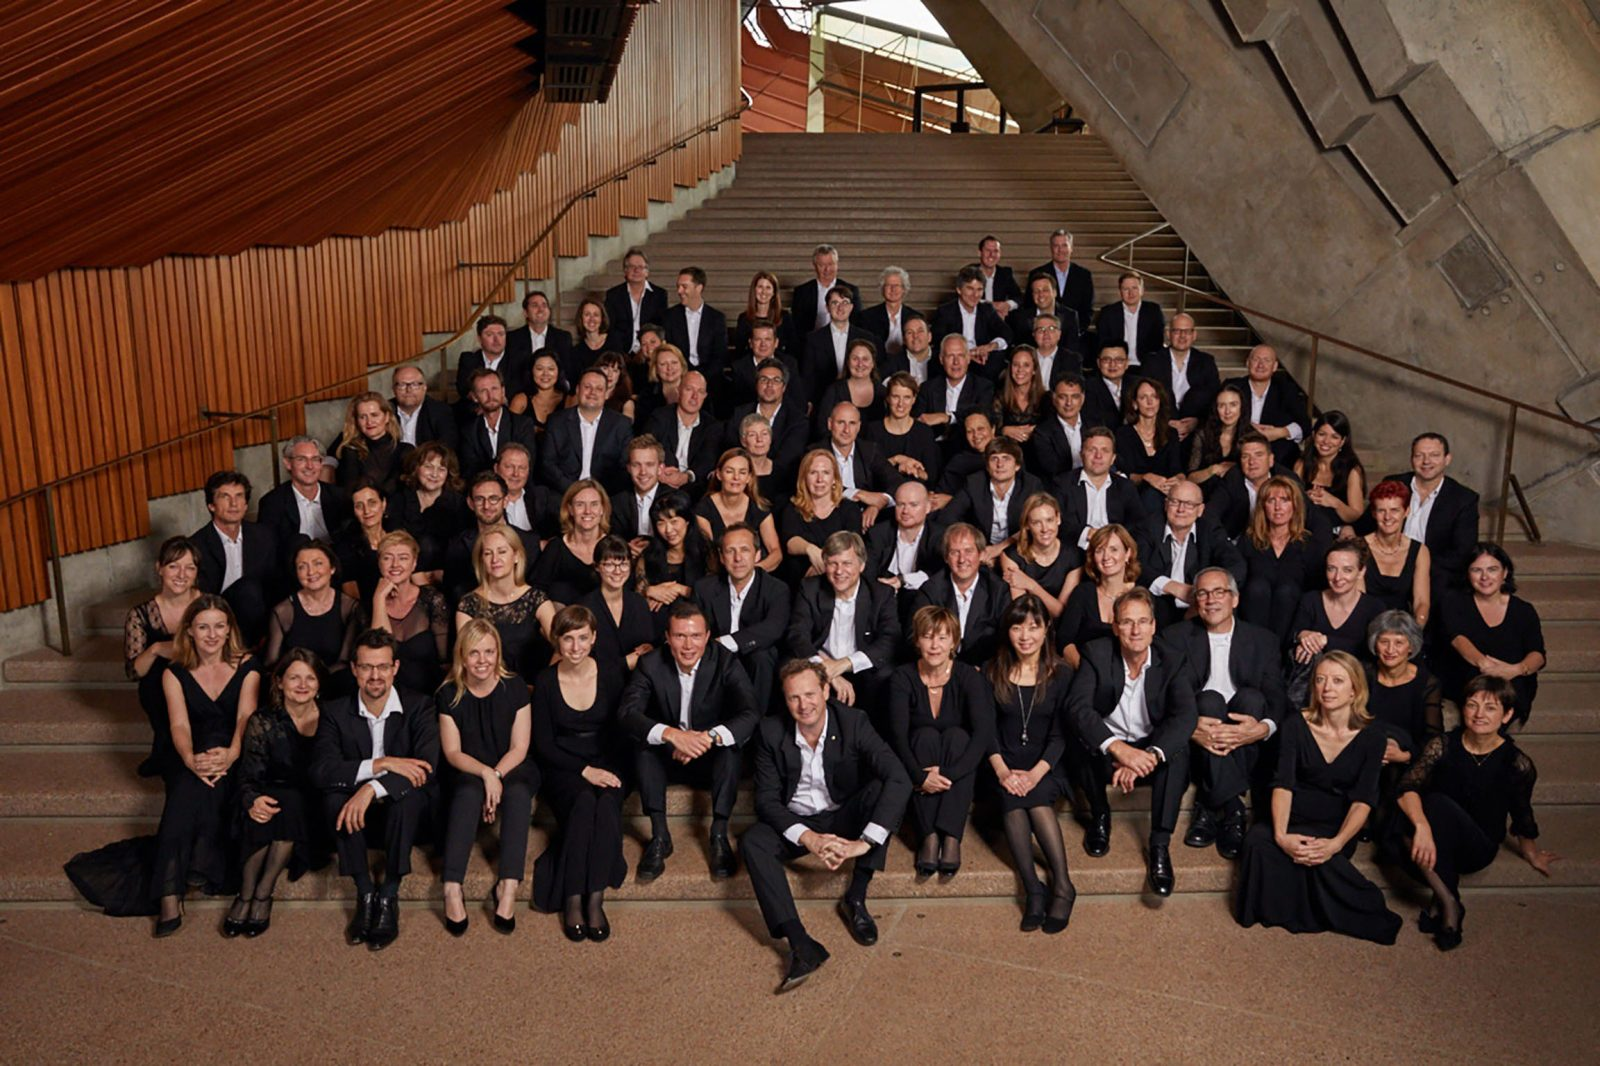 The Australian World Orchestra on the steps of the Sydney Opera House